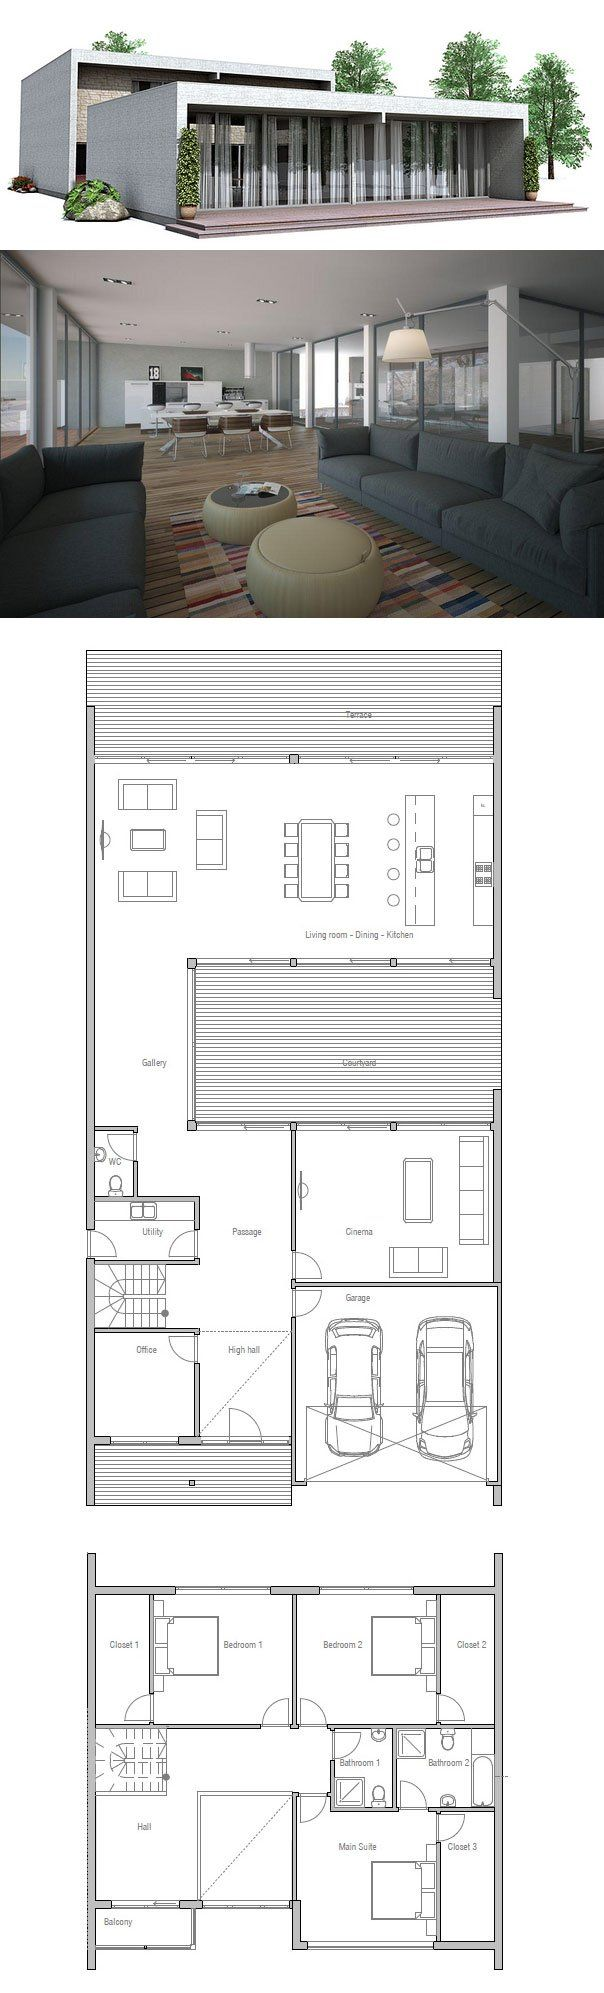 House Architecture Plan best 25+ modern house floor plans ideas on pinterest | modern